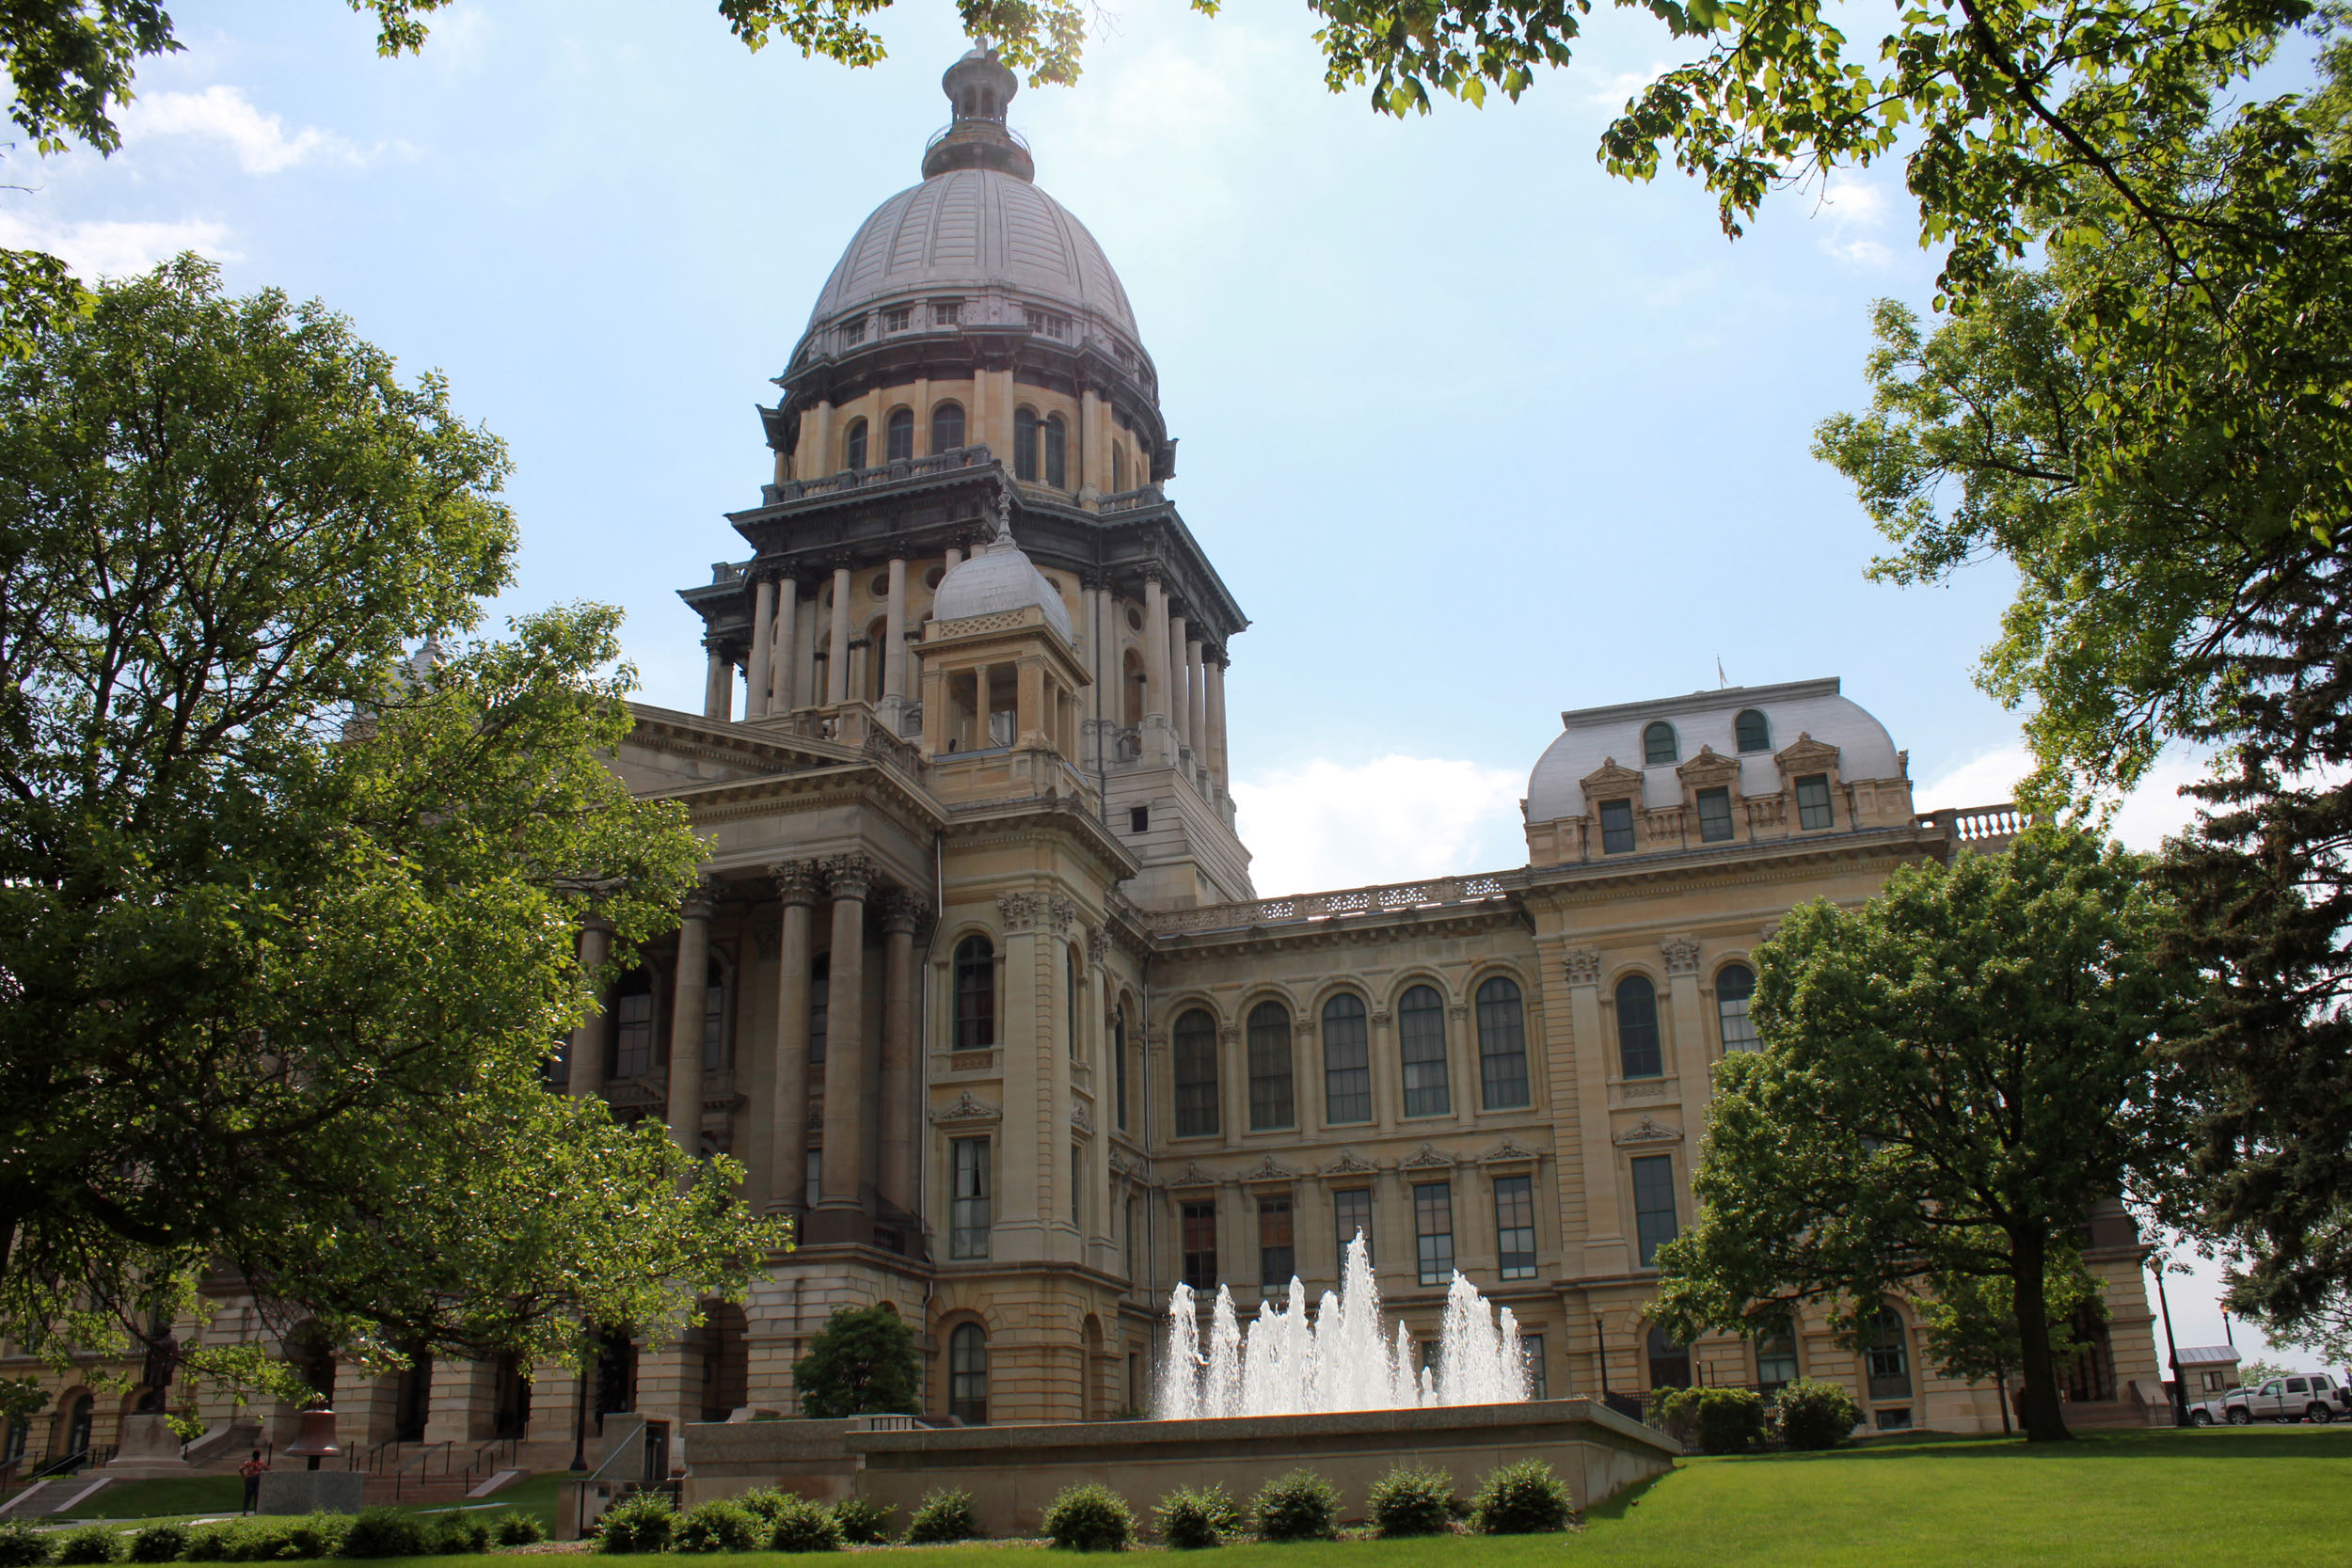 Legislation Would Repeal Law Requiring Parental Notice of Minor's Abortion